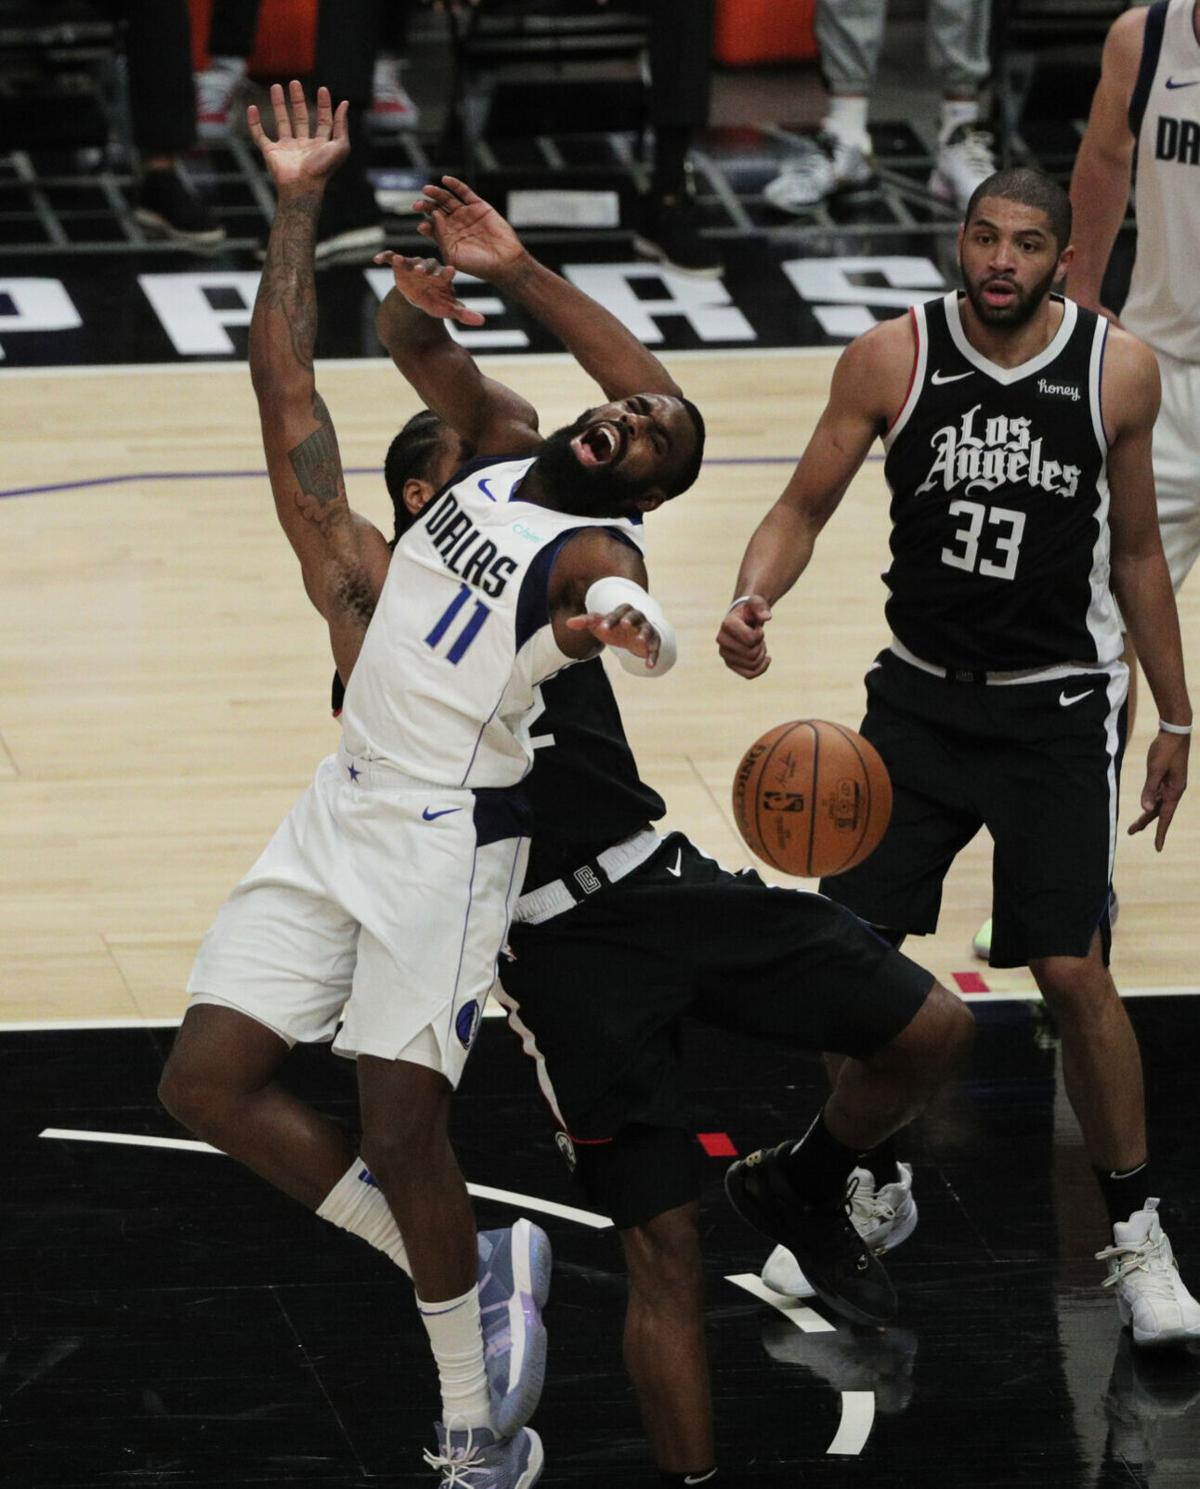 Dallas Mavericks forward Tim Hardaway Jr. and Los Angeles Clippers forward Kawhi Leonard collide going for a loose ball in game seven of the first round of the NBA Playoffs at Staples Center on Sunday, June 6, 2021 in Los Angeles, California.